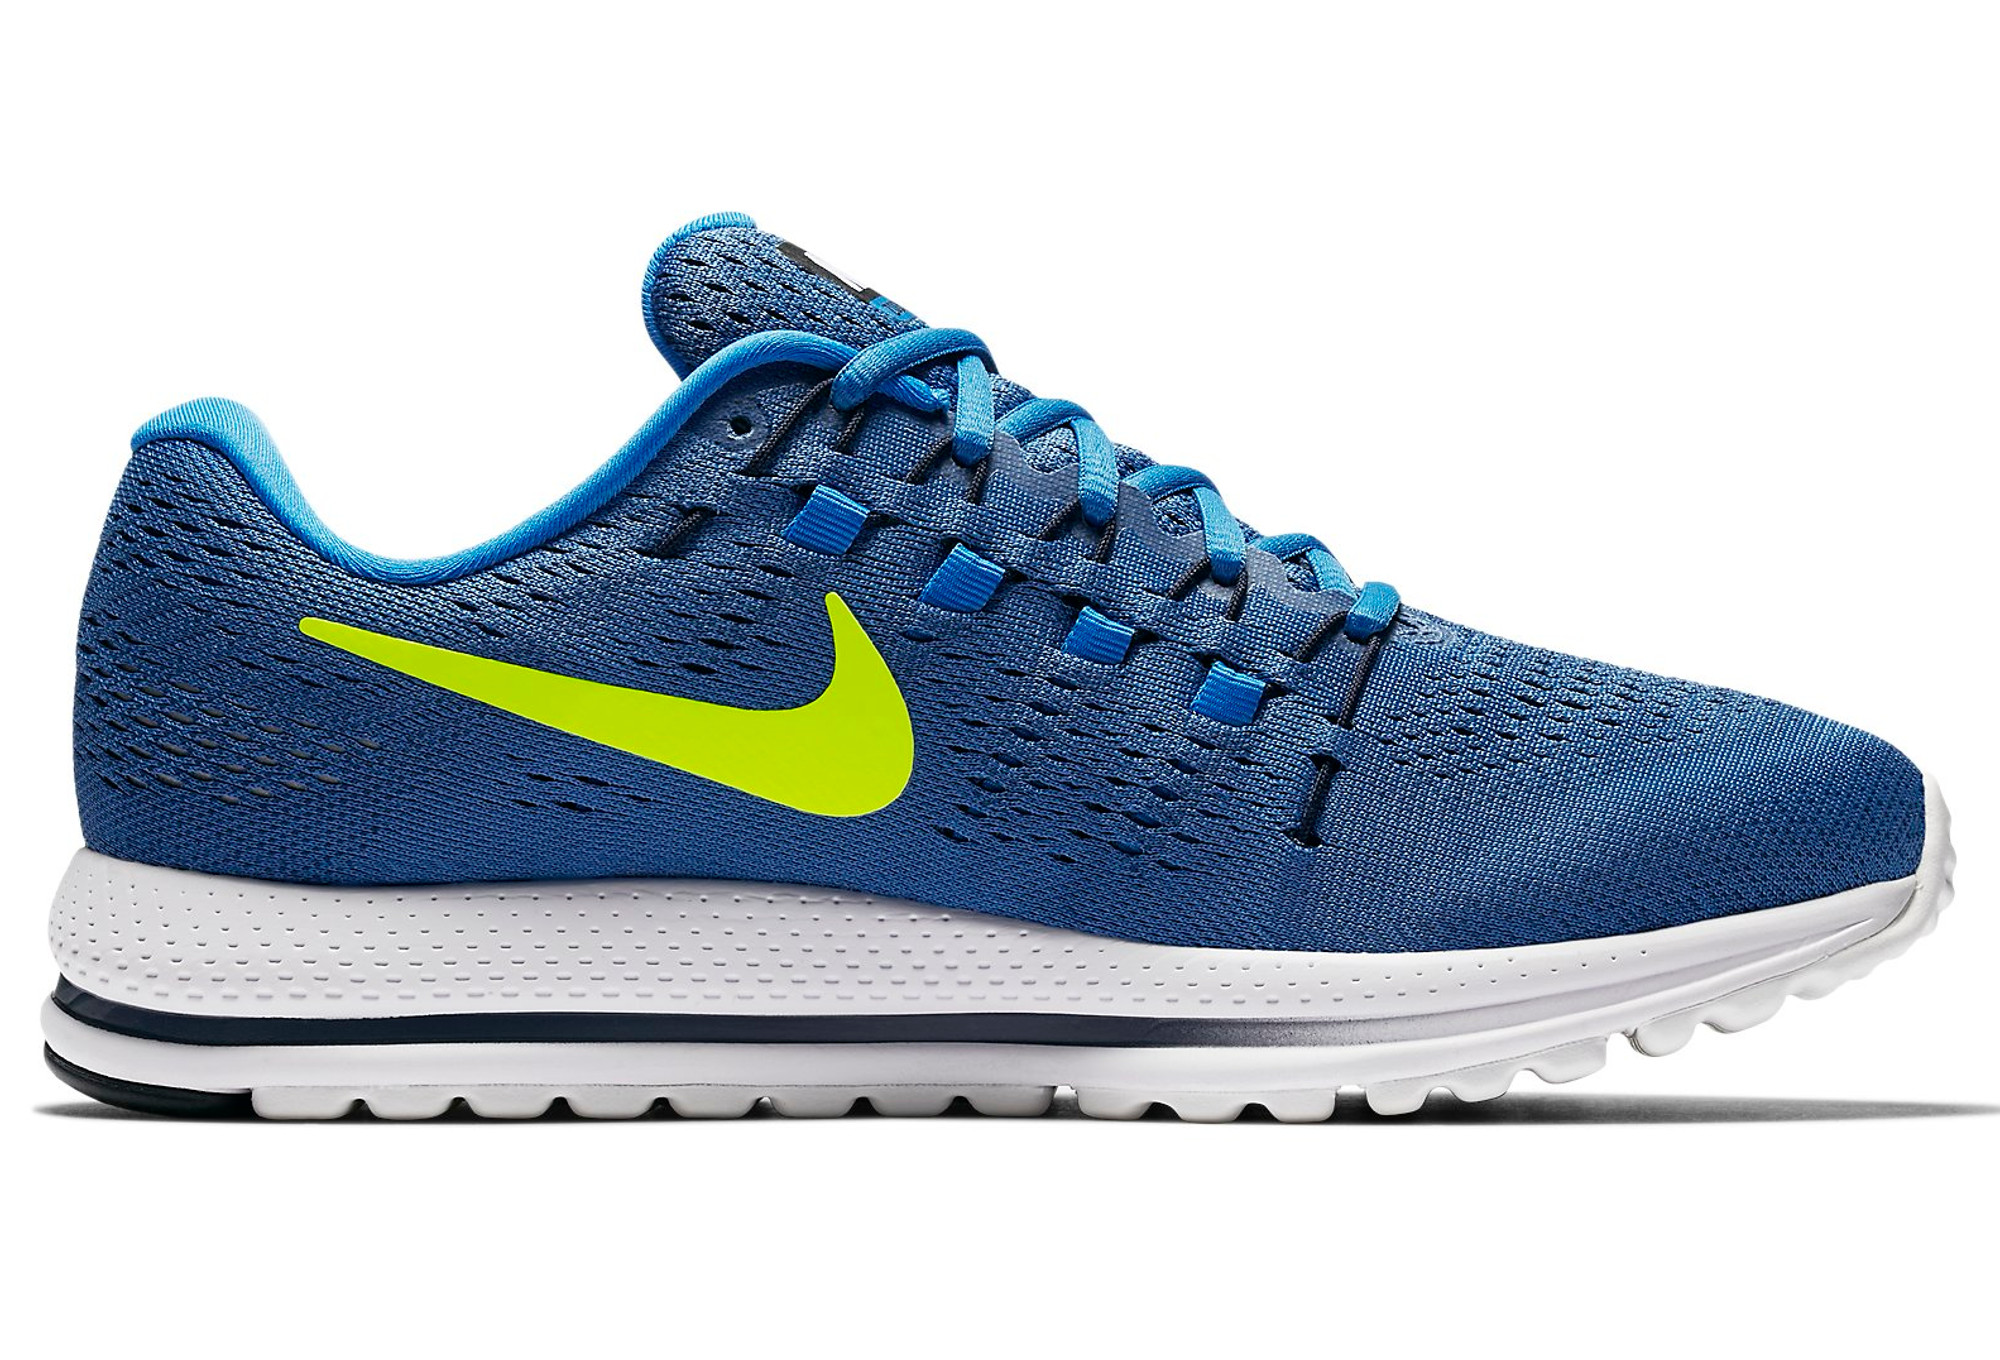 separation shoes 9d4b7 a2230 ... amazon nike air zoom vomero 12 blue yellow men 9087a ada86